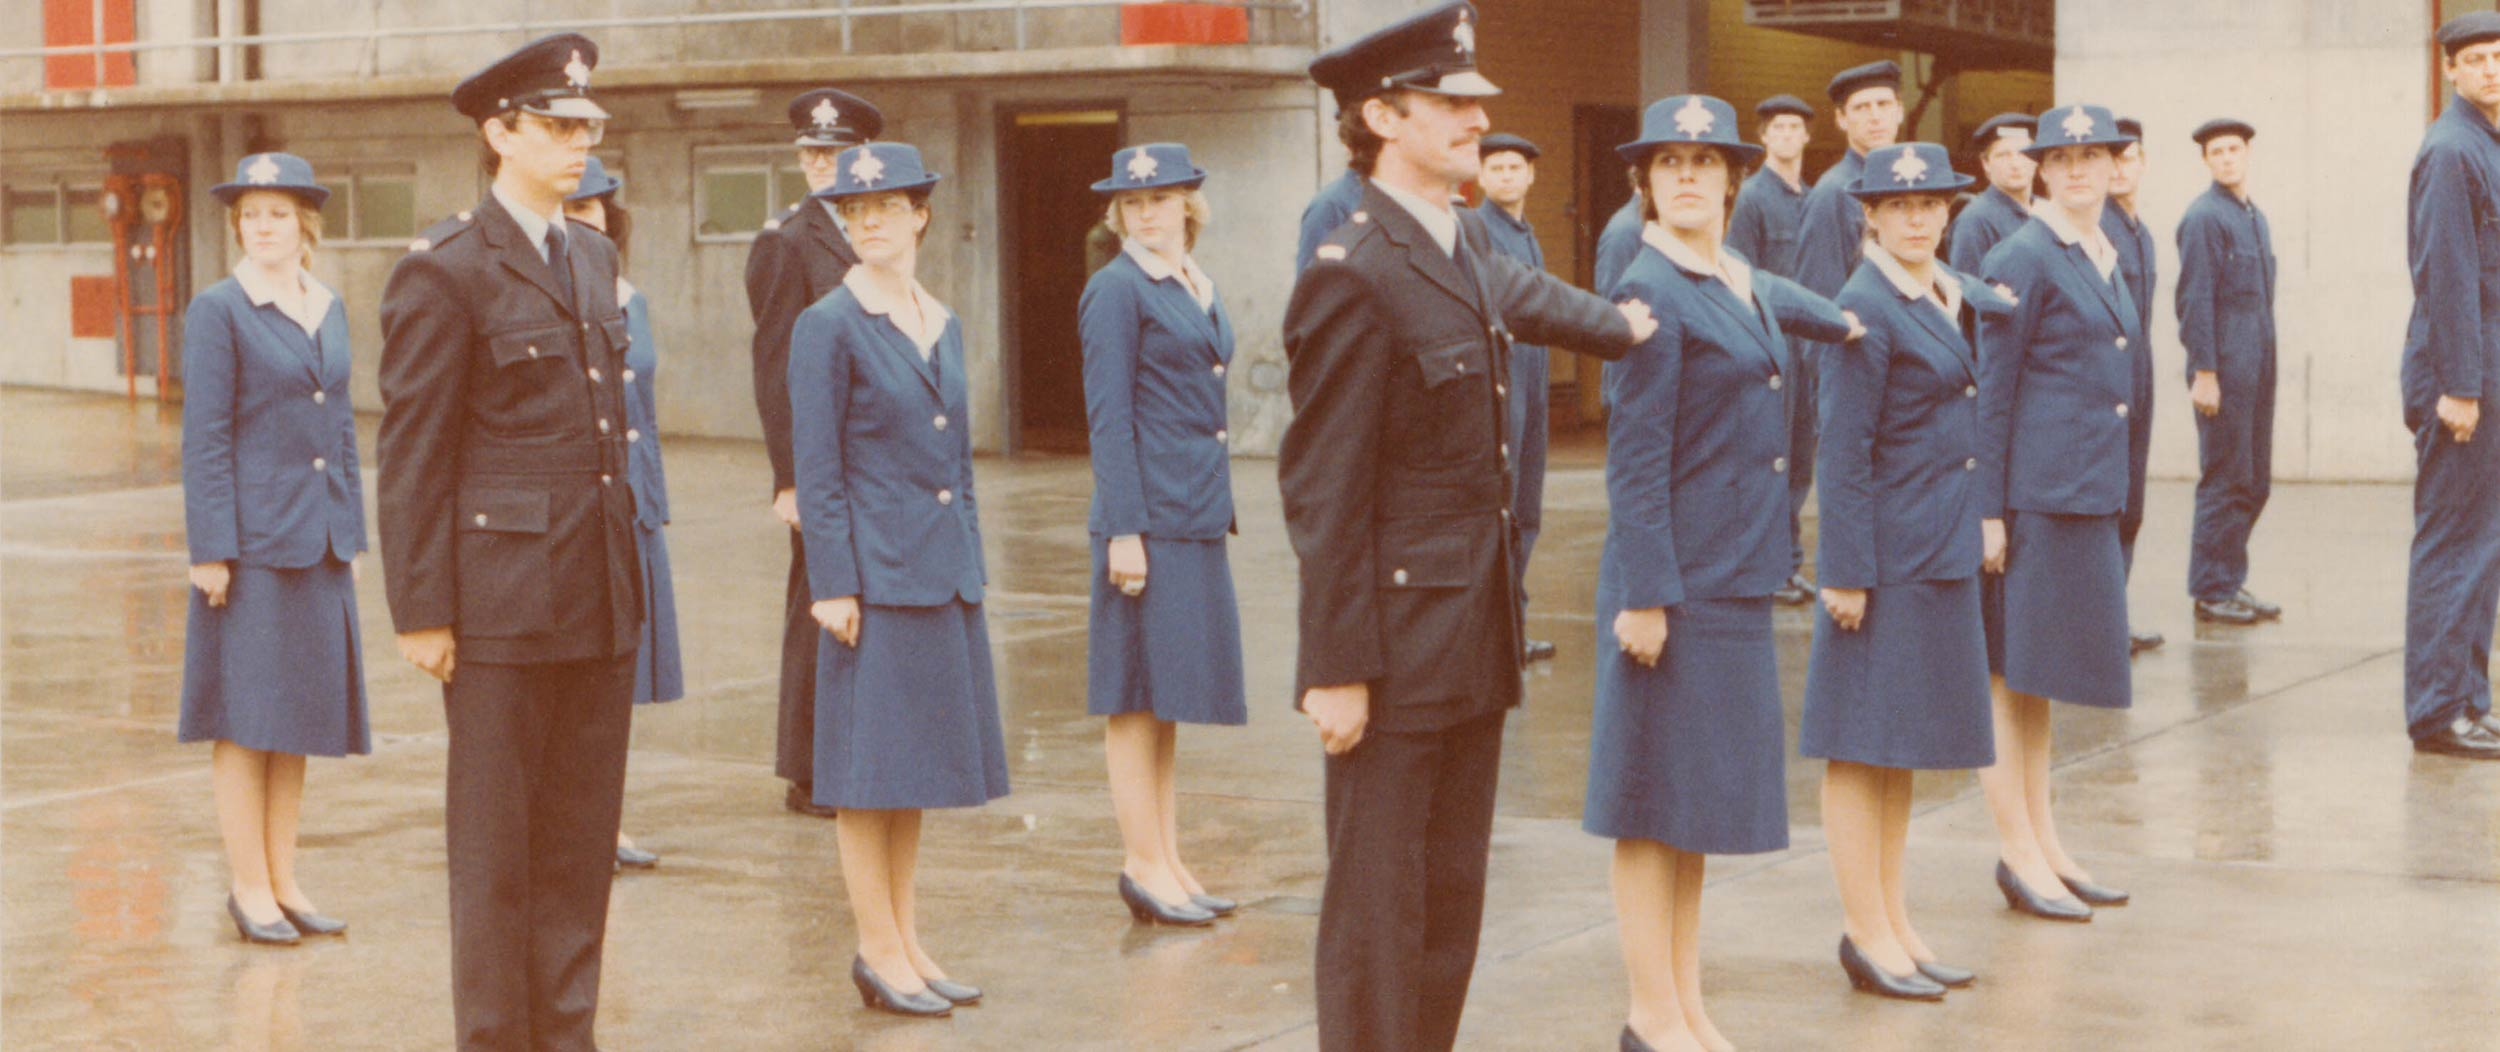 The impracticality of the women's uniform was felt when serious call-outs required operators to run down two flights of stairs, cross the street and climb into the communications van to provide onsite support to the firefighters.